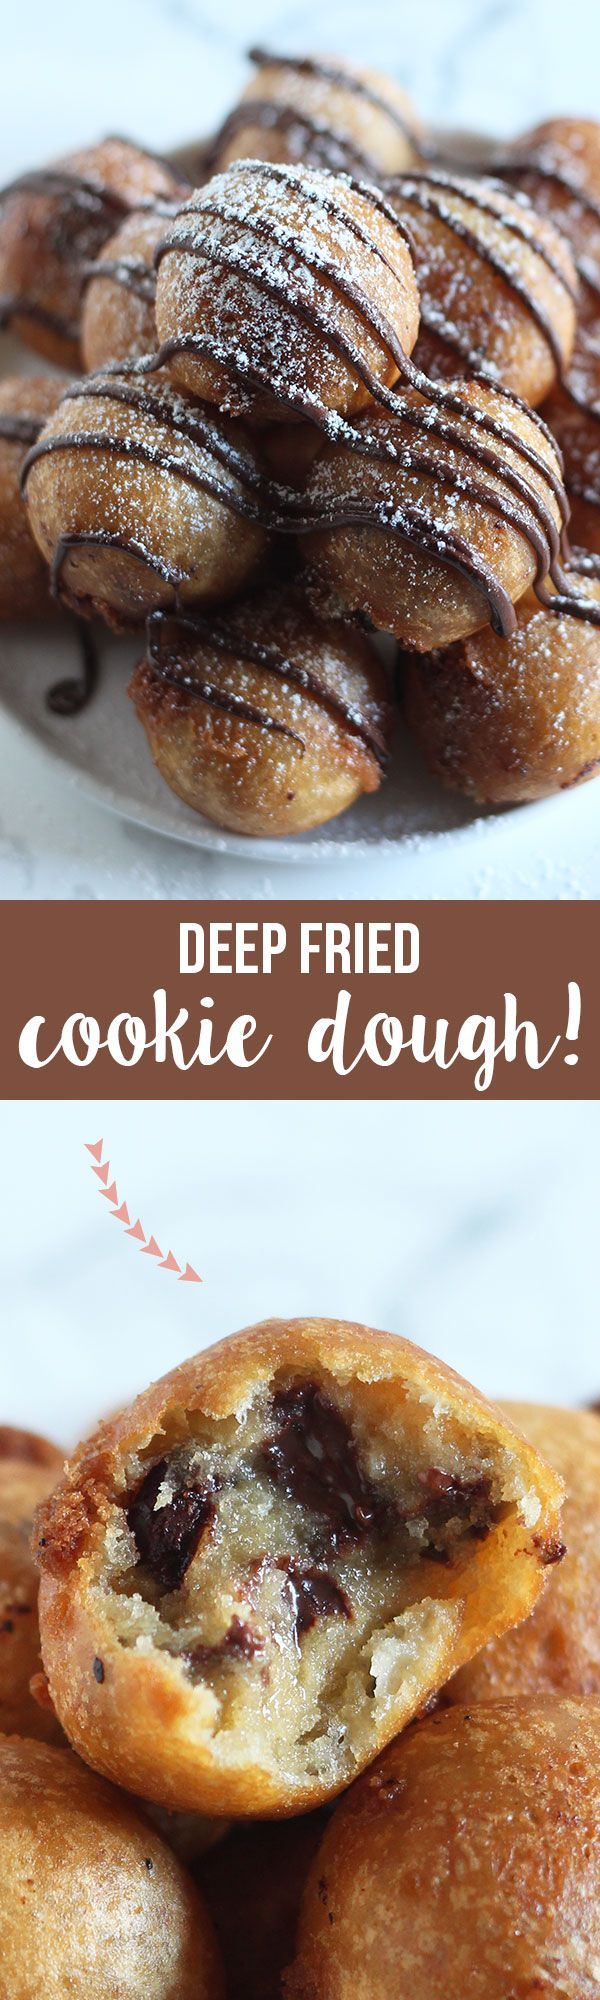 OMG possibly the BESt thing I've ever eaten! Deep Fried Cookie Dough made with homemade chocolate chip cookie dough, dipped in batter, and fried to golden crispy perfection! http://www.thisreviewer.com/